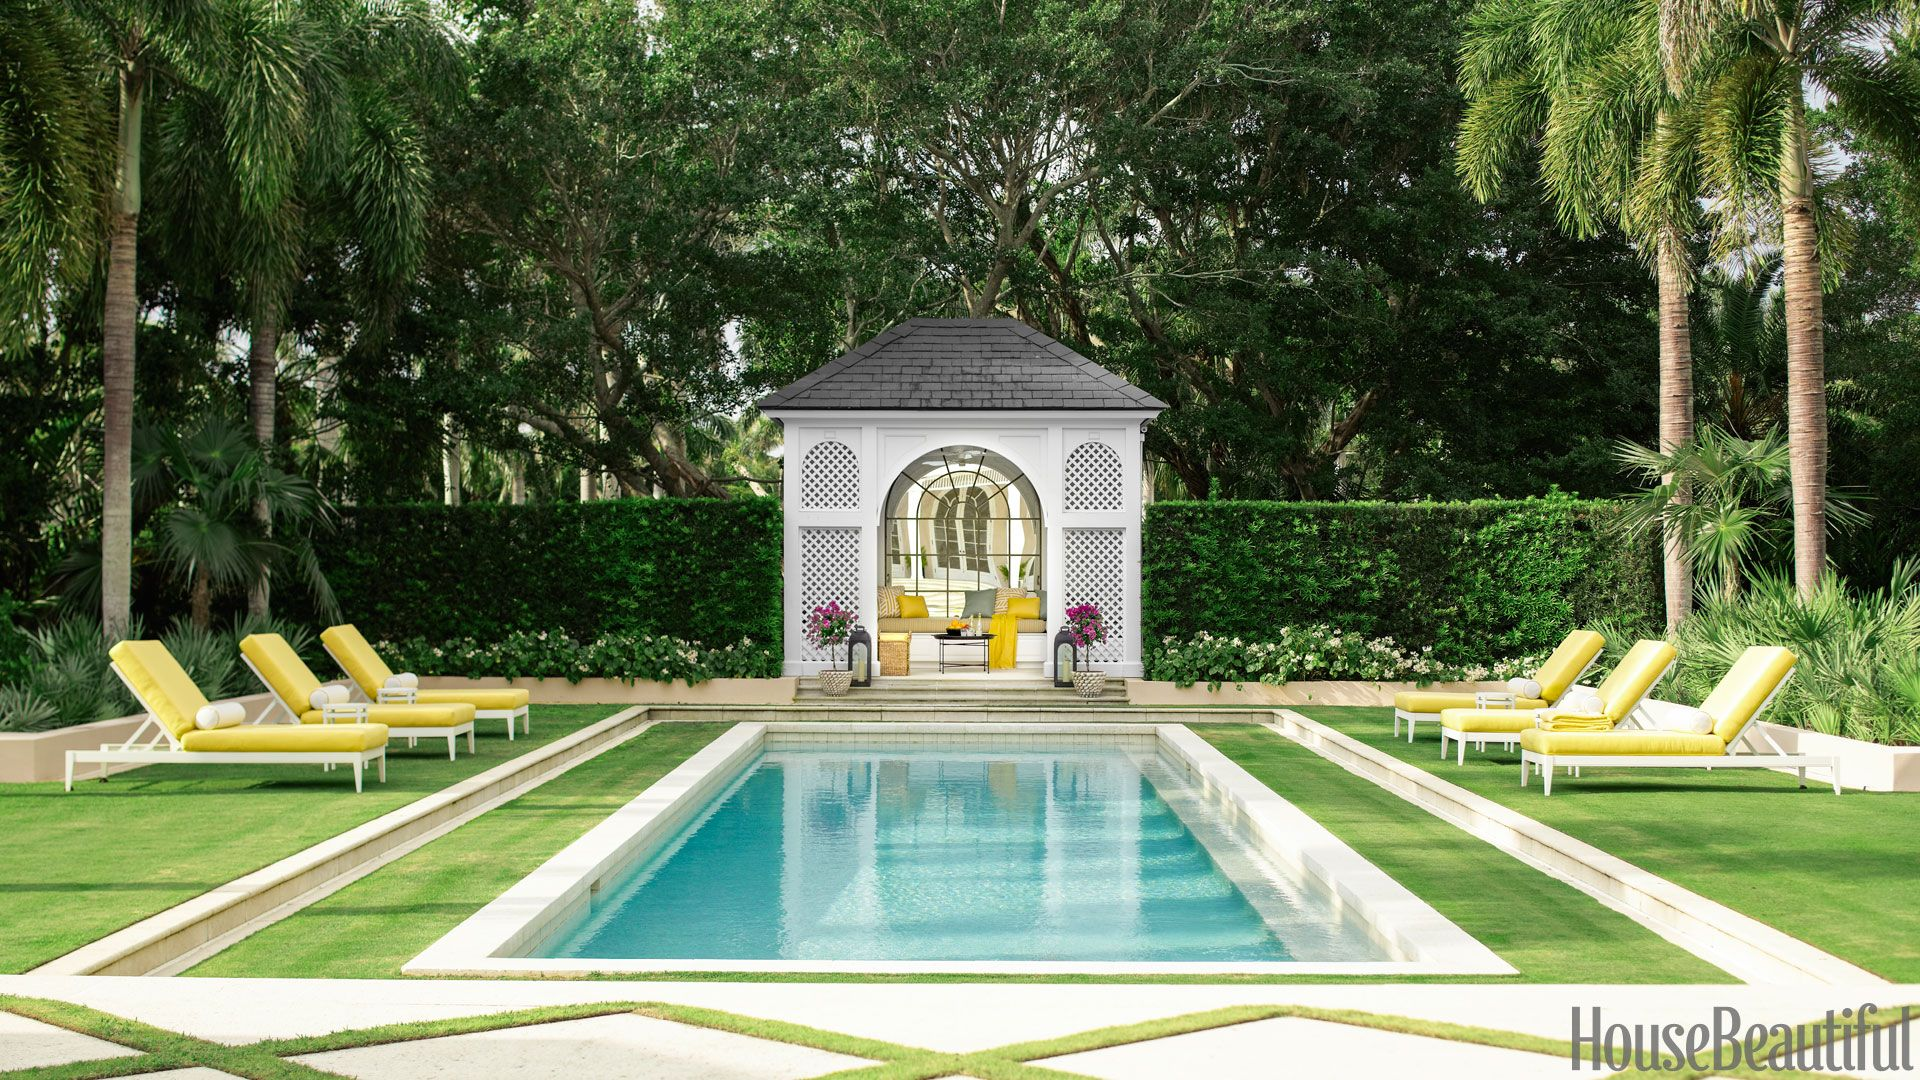 cushions for ghost chairs revolving chair brands in india 40 pool designs - ideas beautiful swimming pools